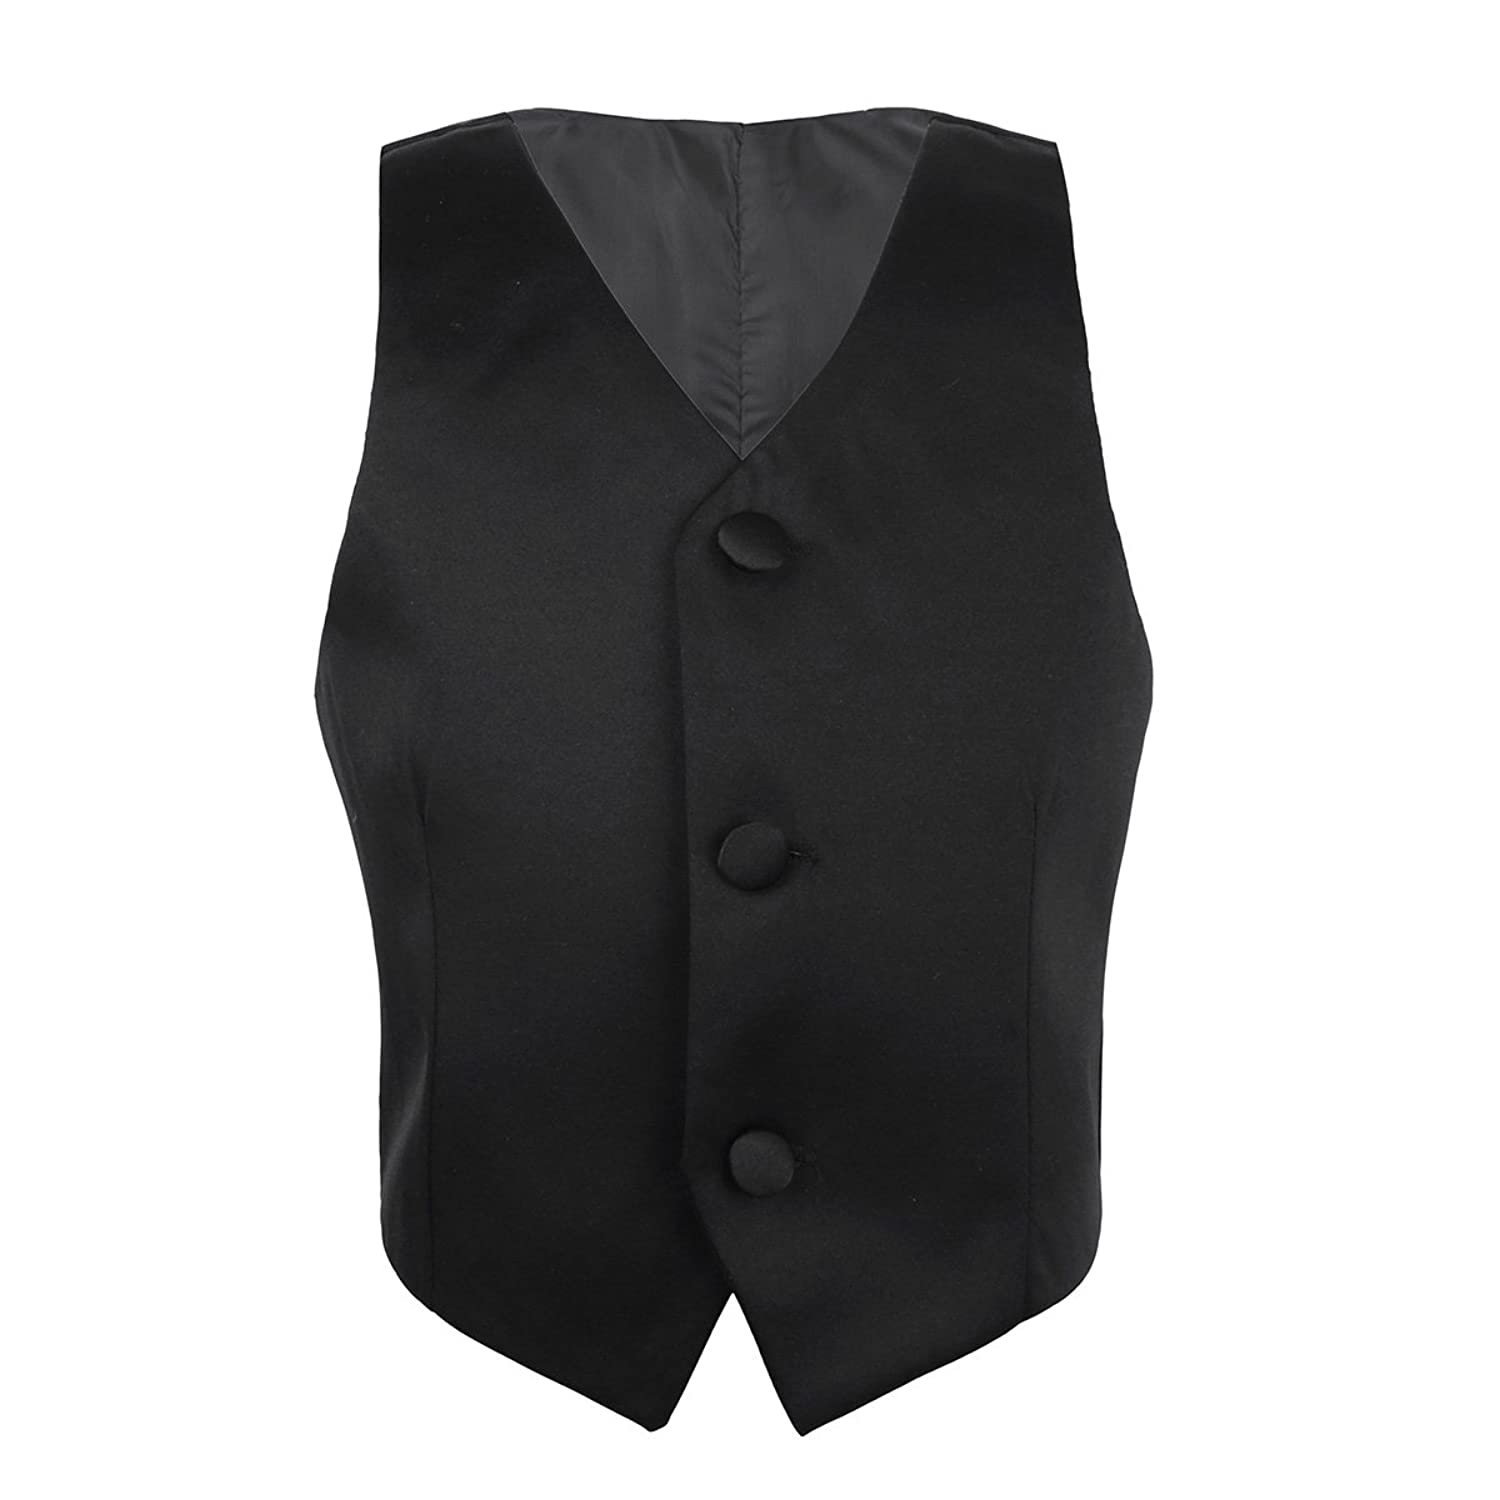 YOOJIA SUIT ボーイズ